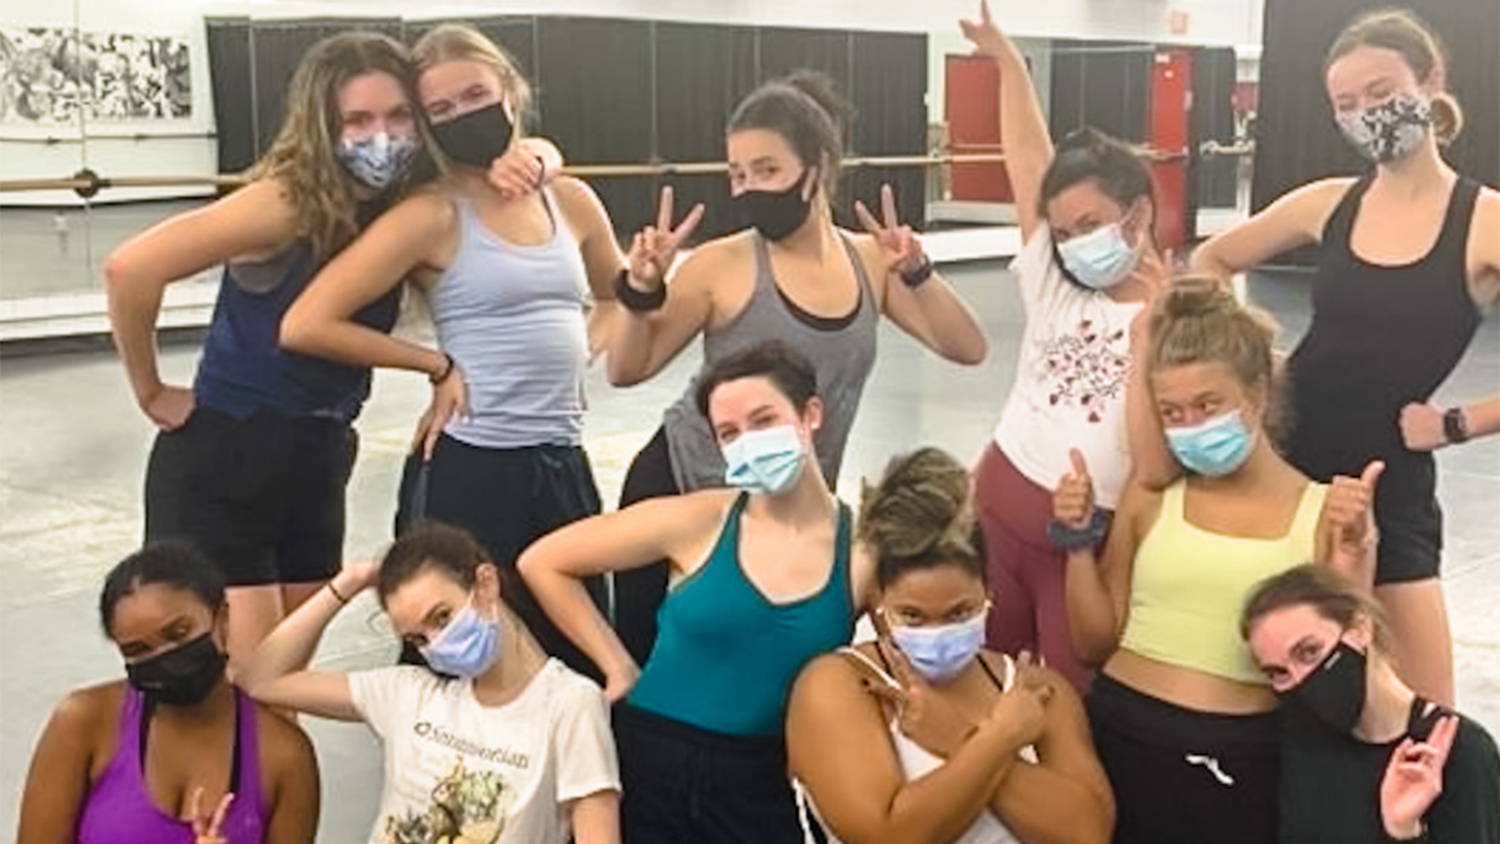 A group of dance students pose and make wolfie signs during the residency weekend